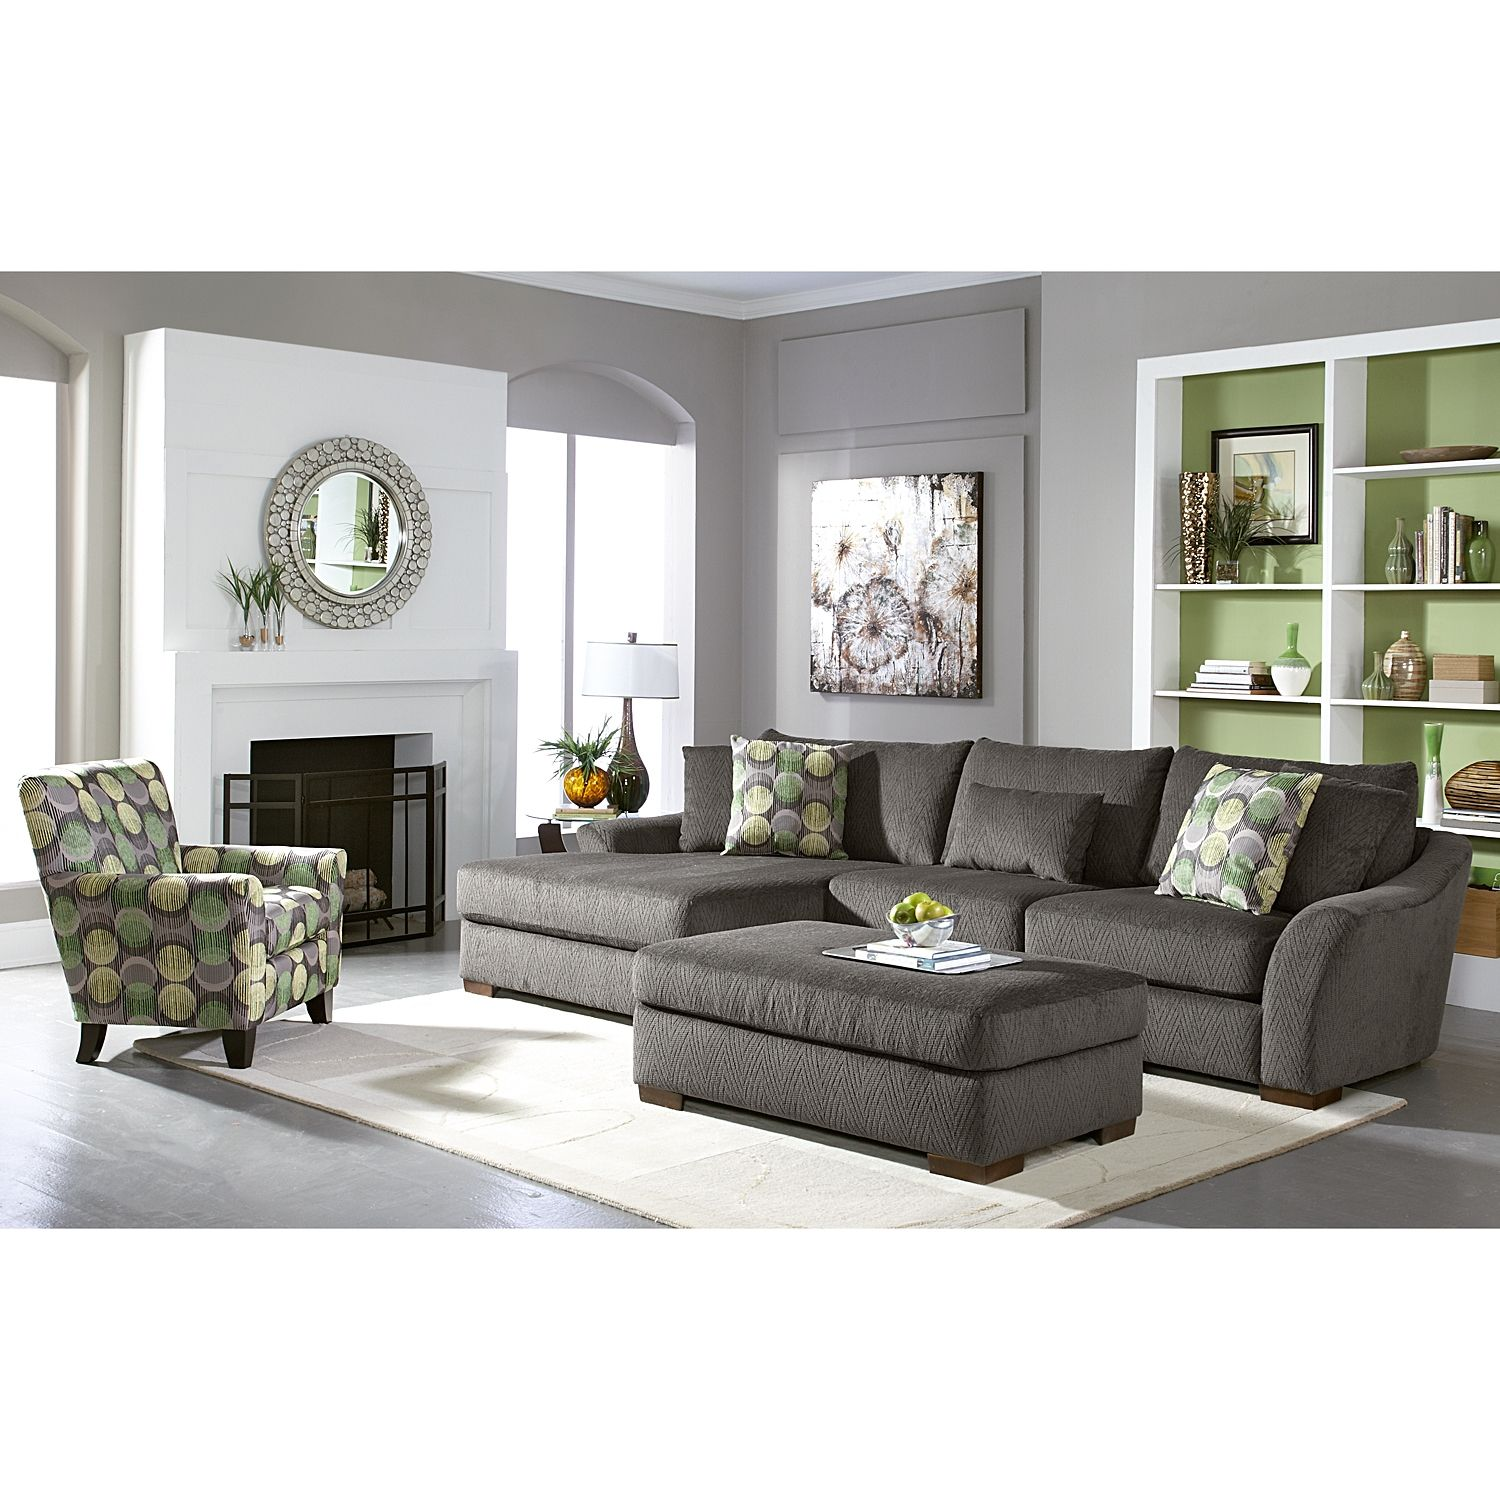 Living Room Pc Exterior Impressive Living Room Furniture  Oasis 2 Pcsectional  For The Home . Decorating Inspiration